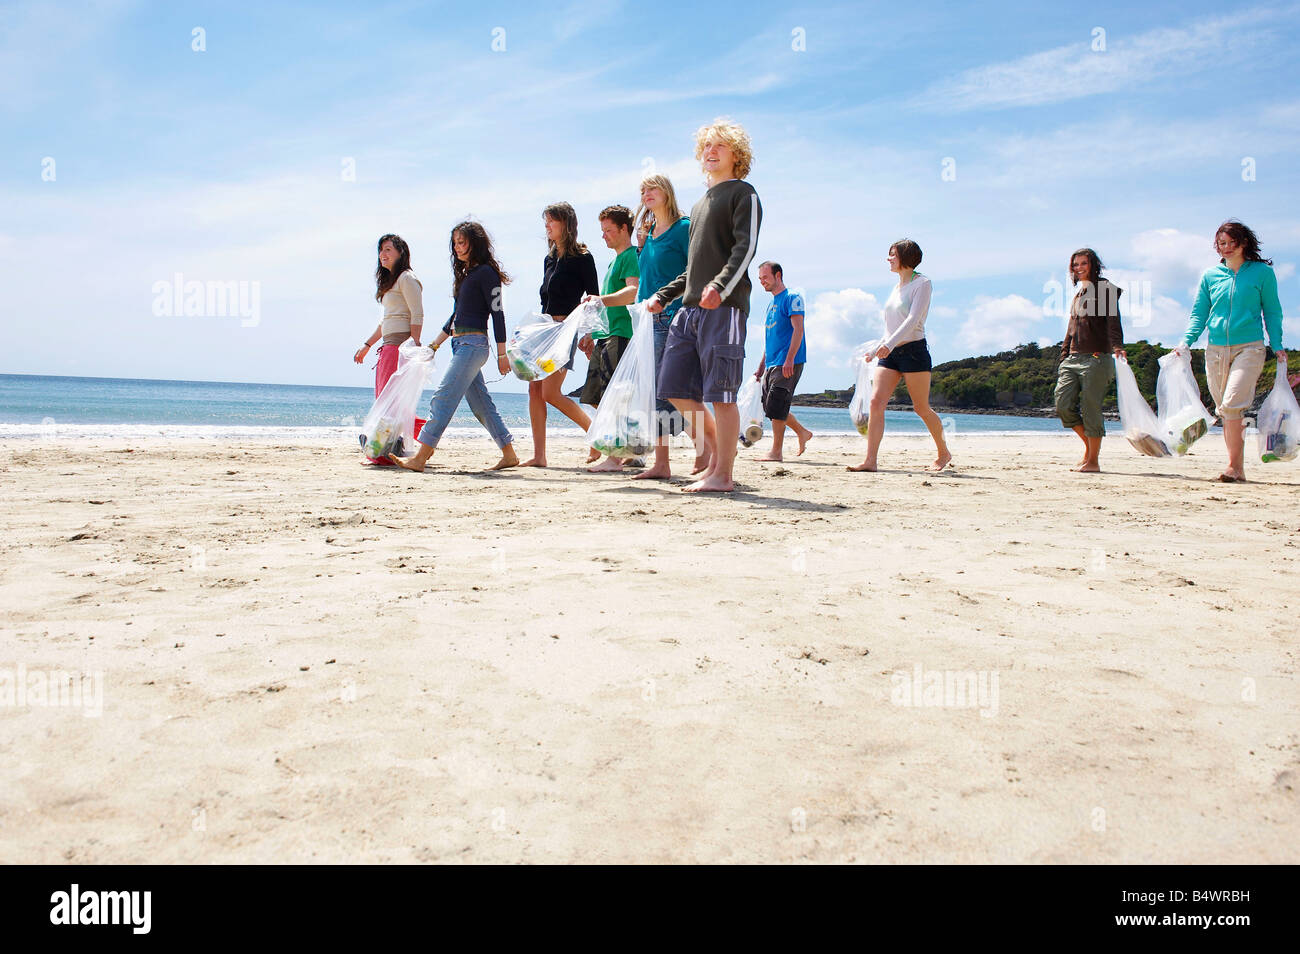 Young people collecting garbage on beach - Stock Image